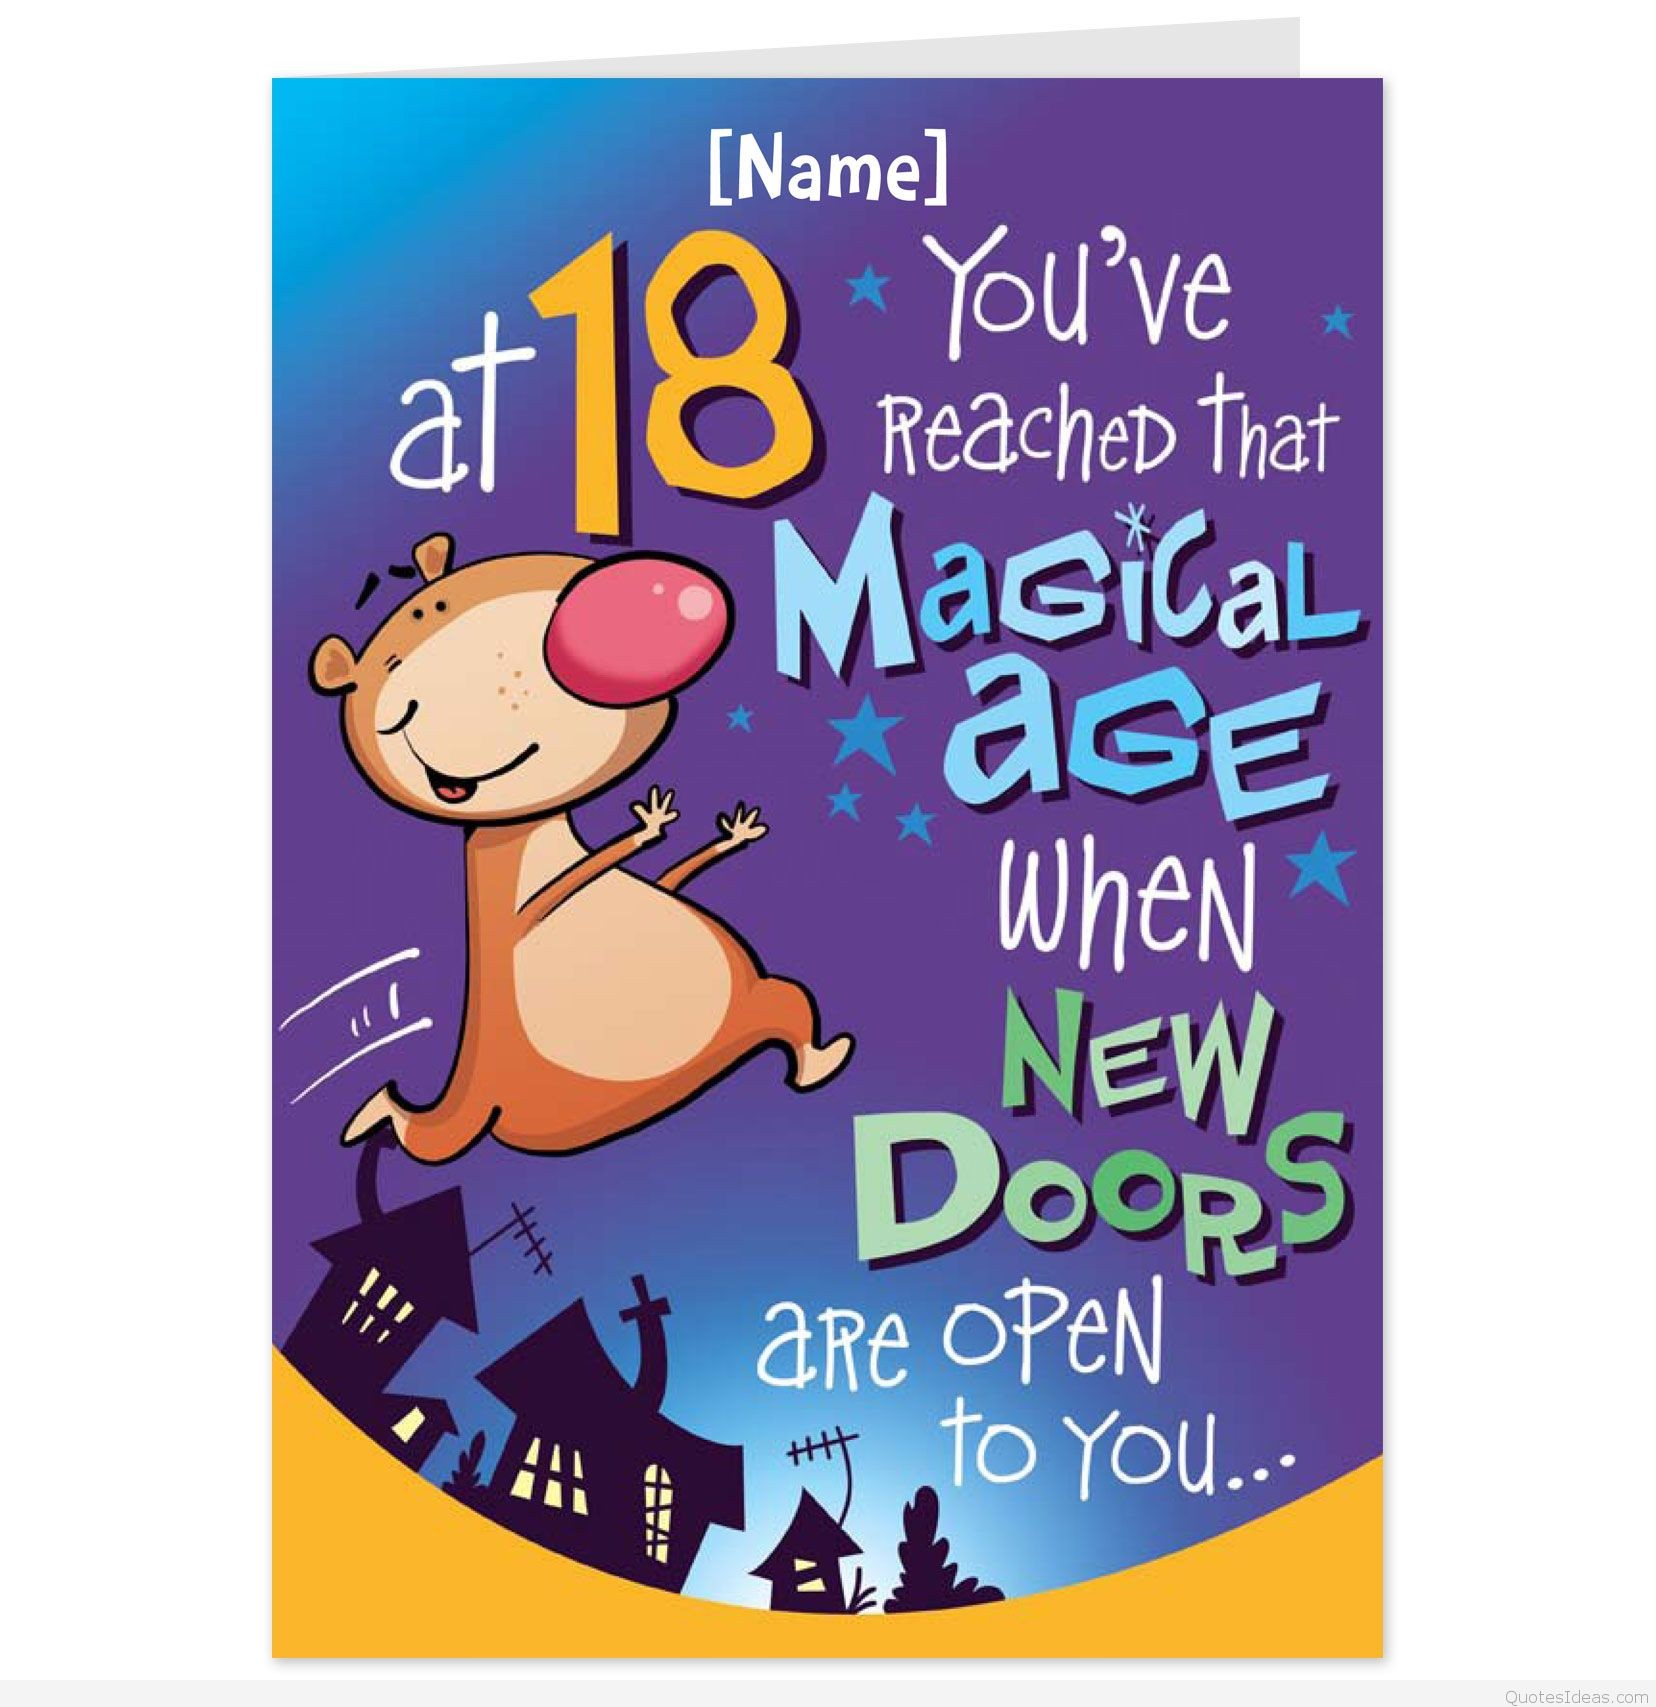 humorous birthday card sayings ; funny-happy-birthday-cards-awesome-humorous-birthday-card-sayings-a-big-birthday-hug-for-you-tjn-123-of-funny-happy-birthday-cards